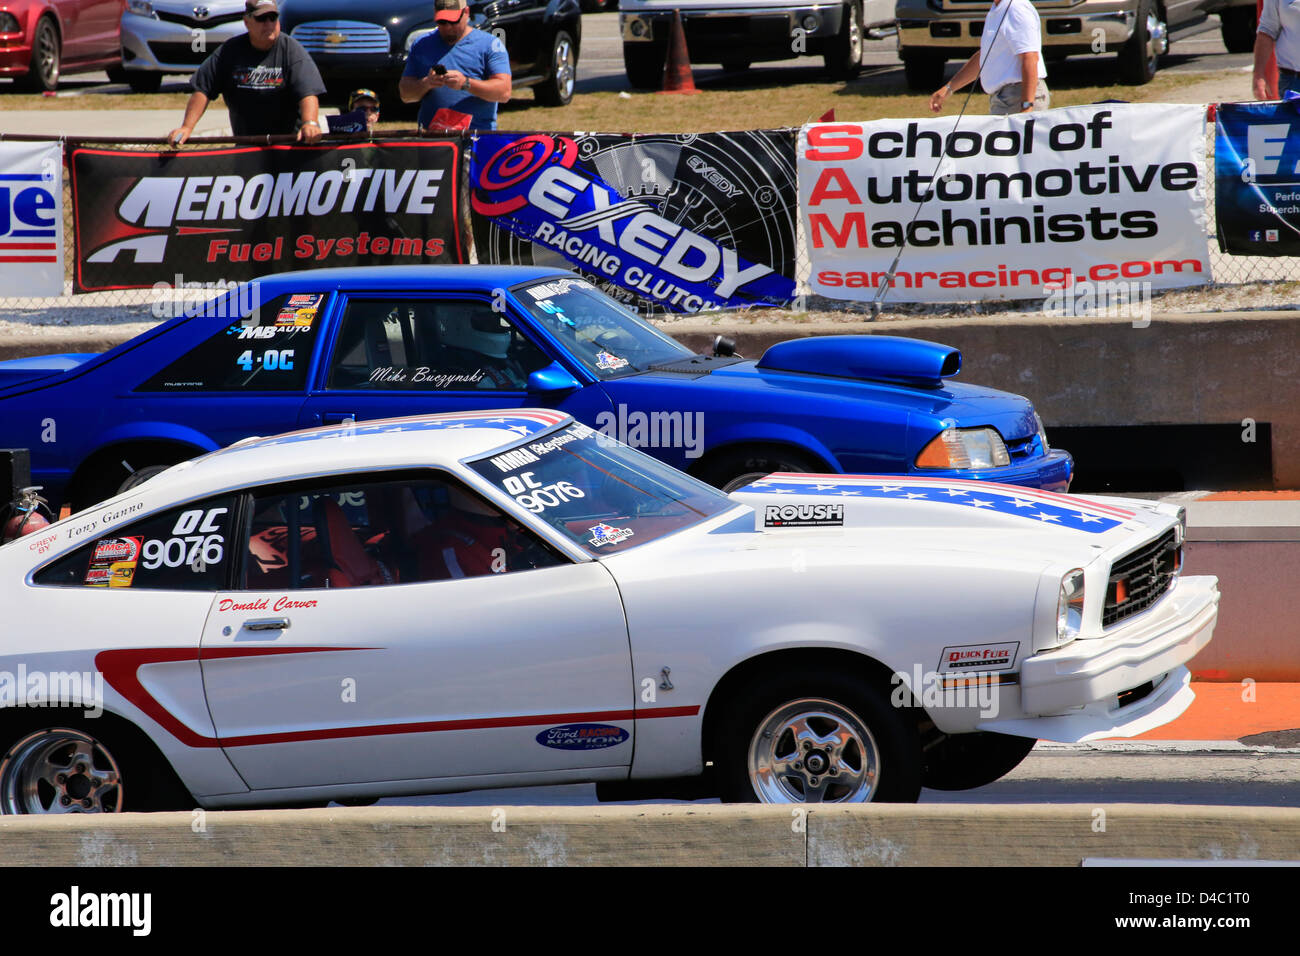 Bradenton Drag Strip >> Two Drag Race Cars Racing On A Drag Strip At The Bradenton Raceway